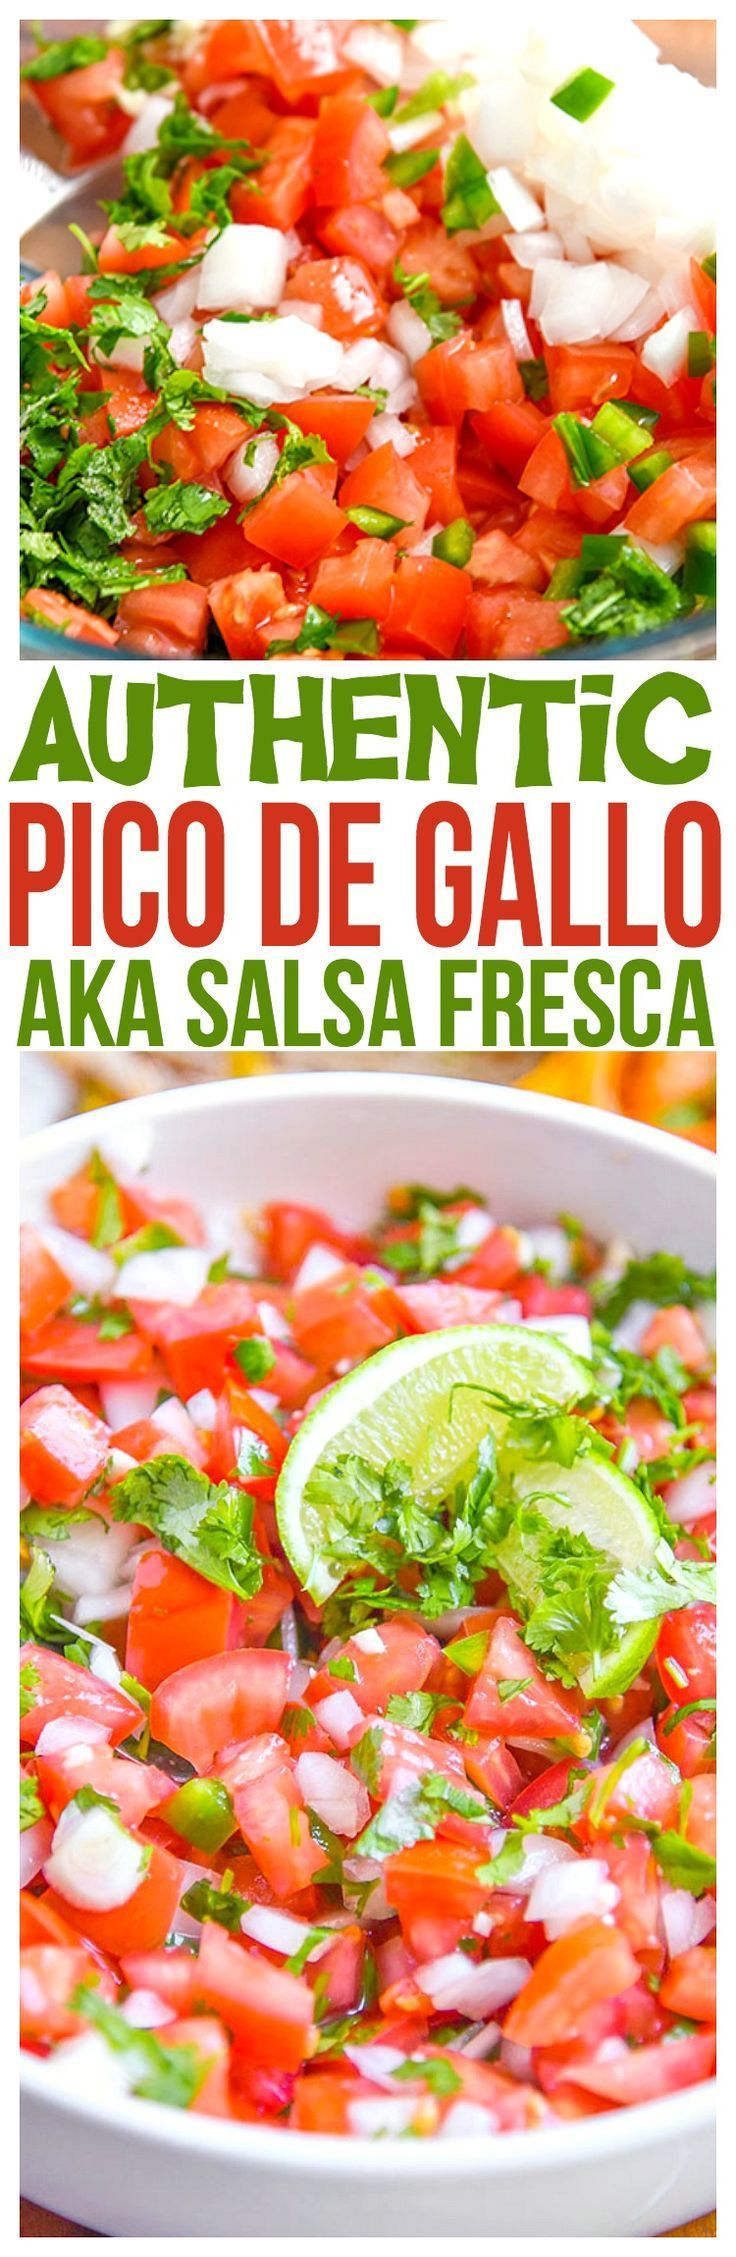 Authentic Pico de Gallo Recipe - By far the best pico de gallo recipe we've made. A fresh Salsa Fresca recipe for tacos, fajitas, and even with chips with fresh pico. (aka salsa with fresh tomatoes)